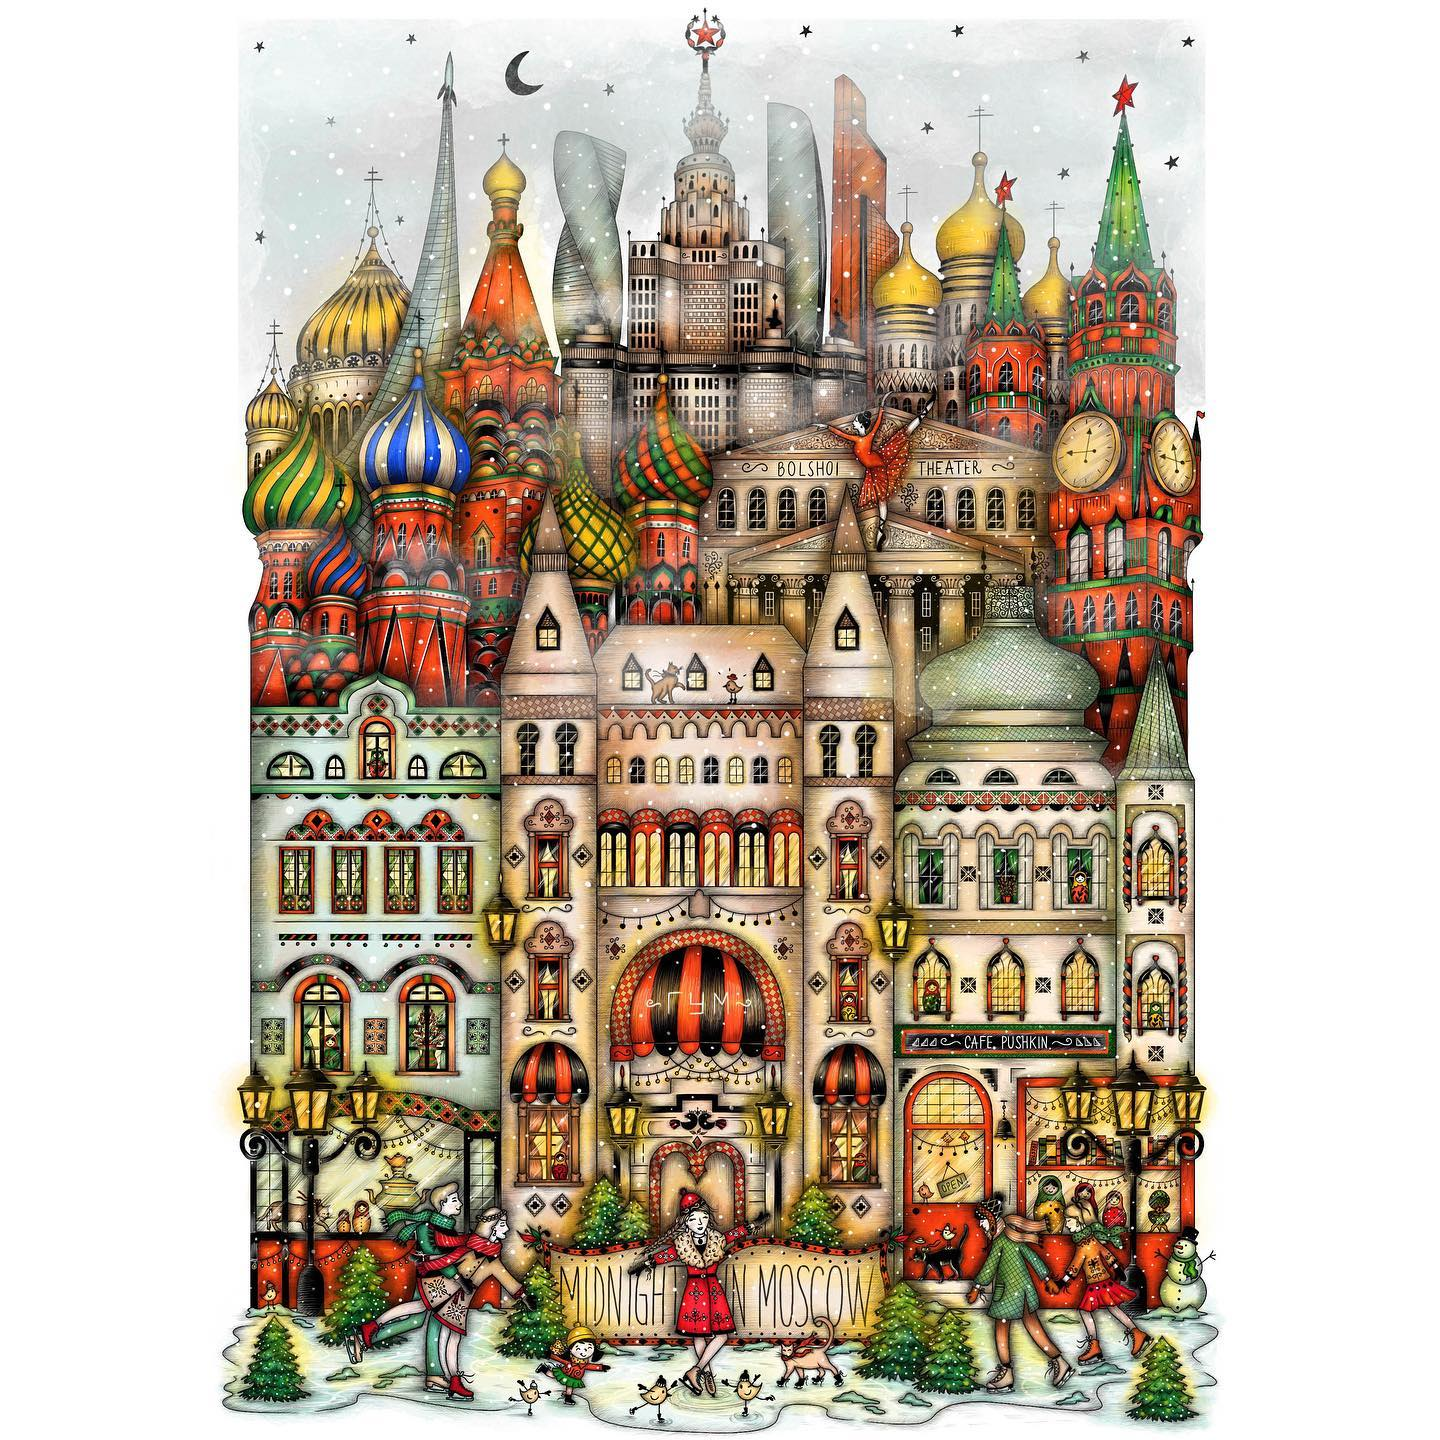 "Instagram post: Aaaand the 14th illustration of the series, ""Midnight in Moscow"" is now finished ♥️⭐️💚 Swipe left for details 🧡 Moscow's winter wonderland, with the colorful St. Basil's Cathedral, the Kremlin Towers, the majestic Lomonosov University and the Museum of Cosmonautics ❤️ In the front row there are the traditional Russian houses and the commercial center ""Gum"" with the joyful ice-skating rink, in the festive atmosphere of the holidays. 🌲♥️ Moscow is now up in my shop, link here @madalinadraws 🥳 Thank you all for your patience and your support! ♥️💚 • • • #madalinadraws #madalinatantareanu #moscowdrawing #moscowillustration #postcardfrommoscow #russiaart #russianillustration #matryoshka #stbasilscathedral #kremlin #gum #lomonosov #bolshoitheatre #art #artist #artwork #illustration #drawing #watercolor #ink #etsy #etsyartshop #artistonetsy #colorfulmoscow #coloring #museumofcosmonautics #illustratorinmoscow #artofmoscow"